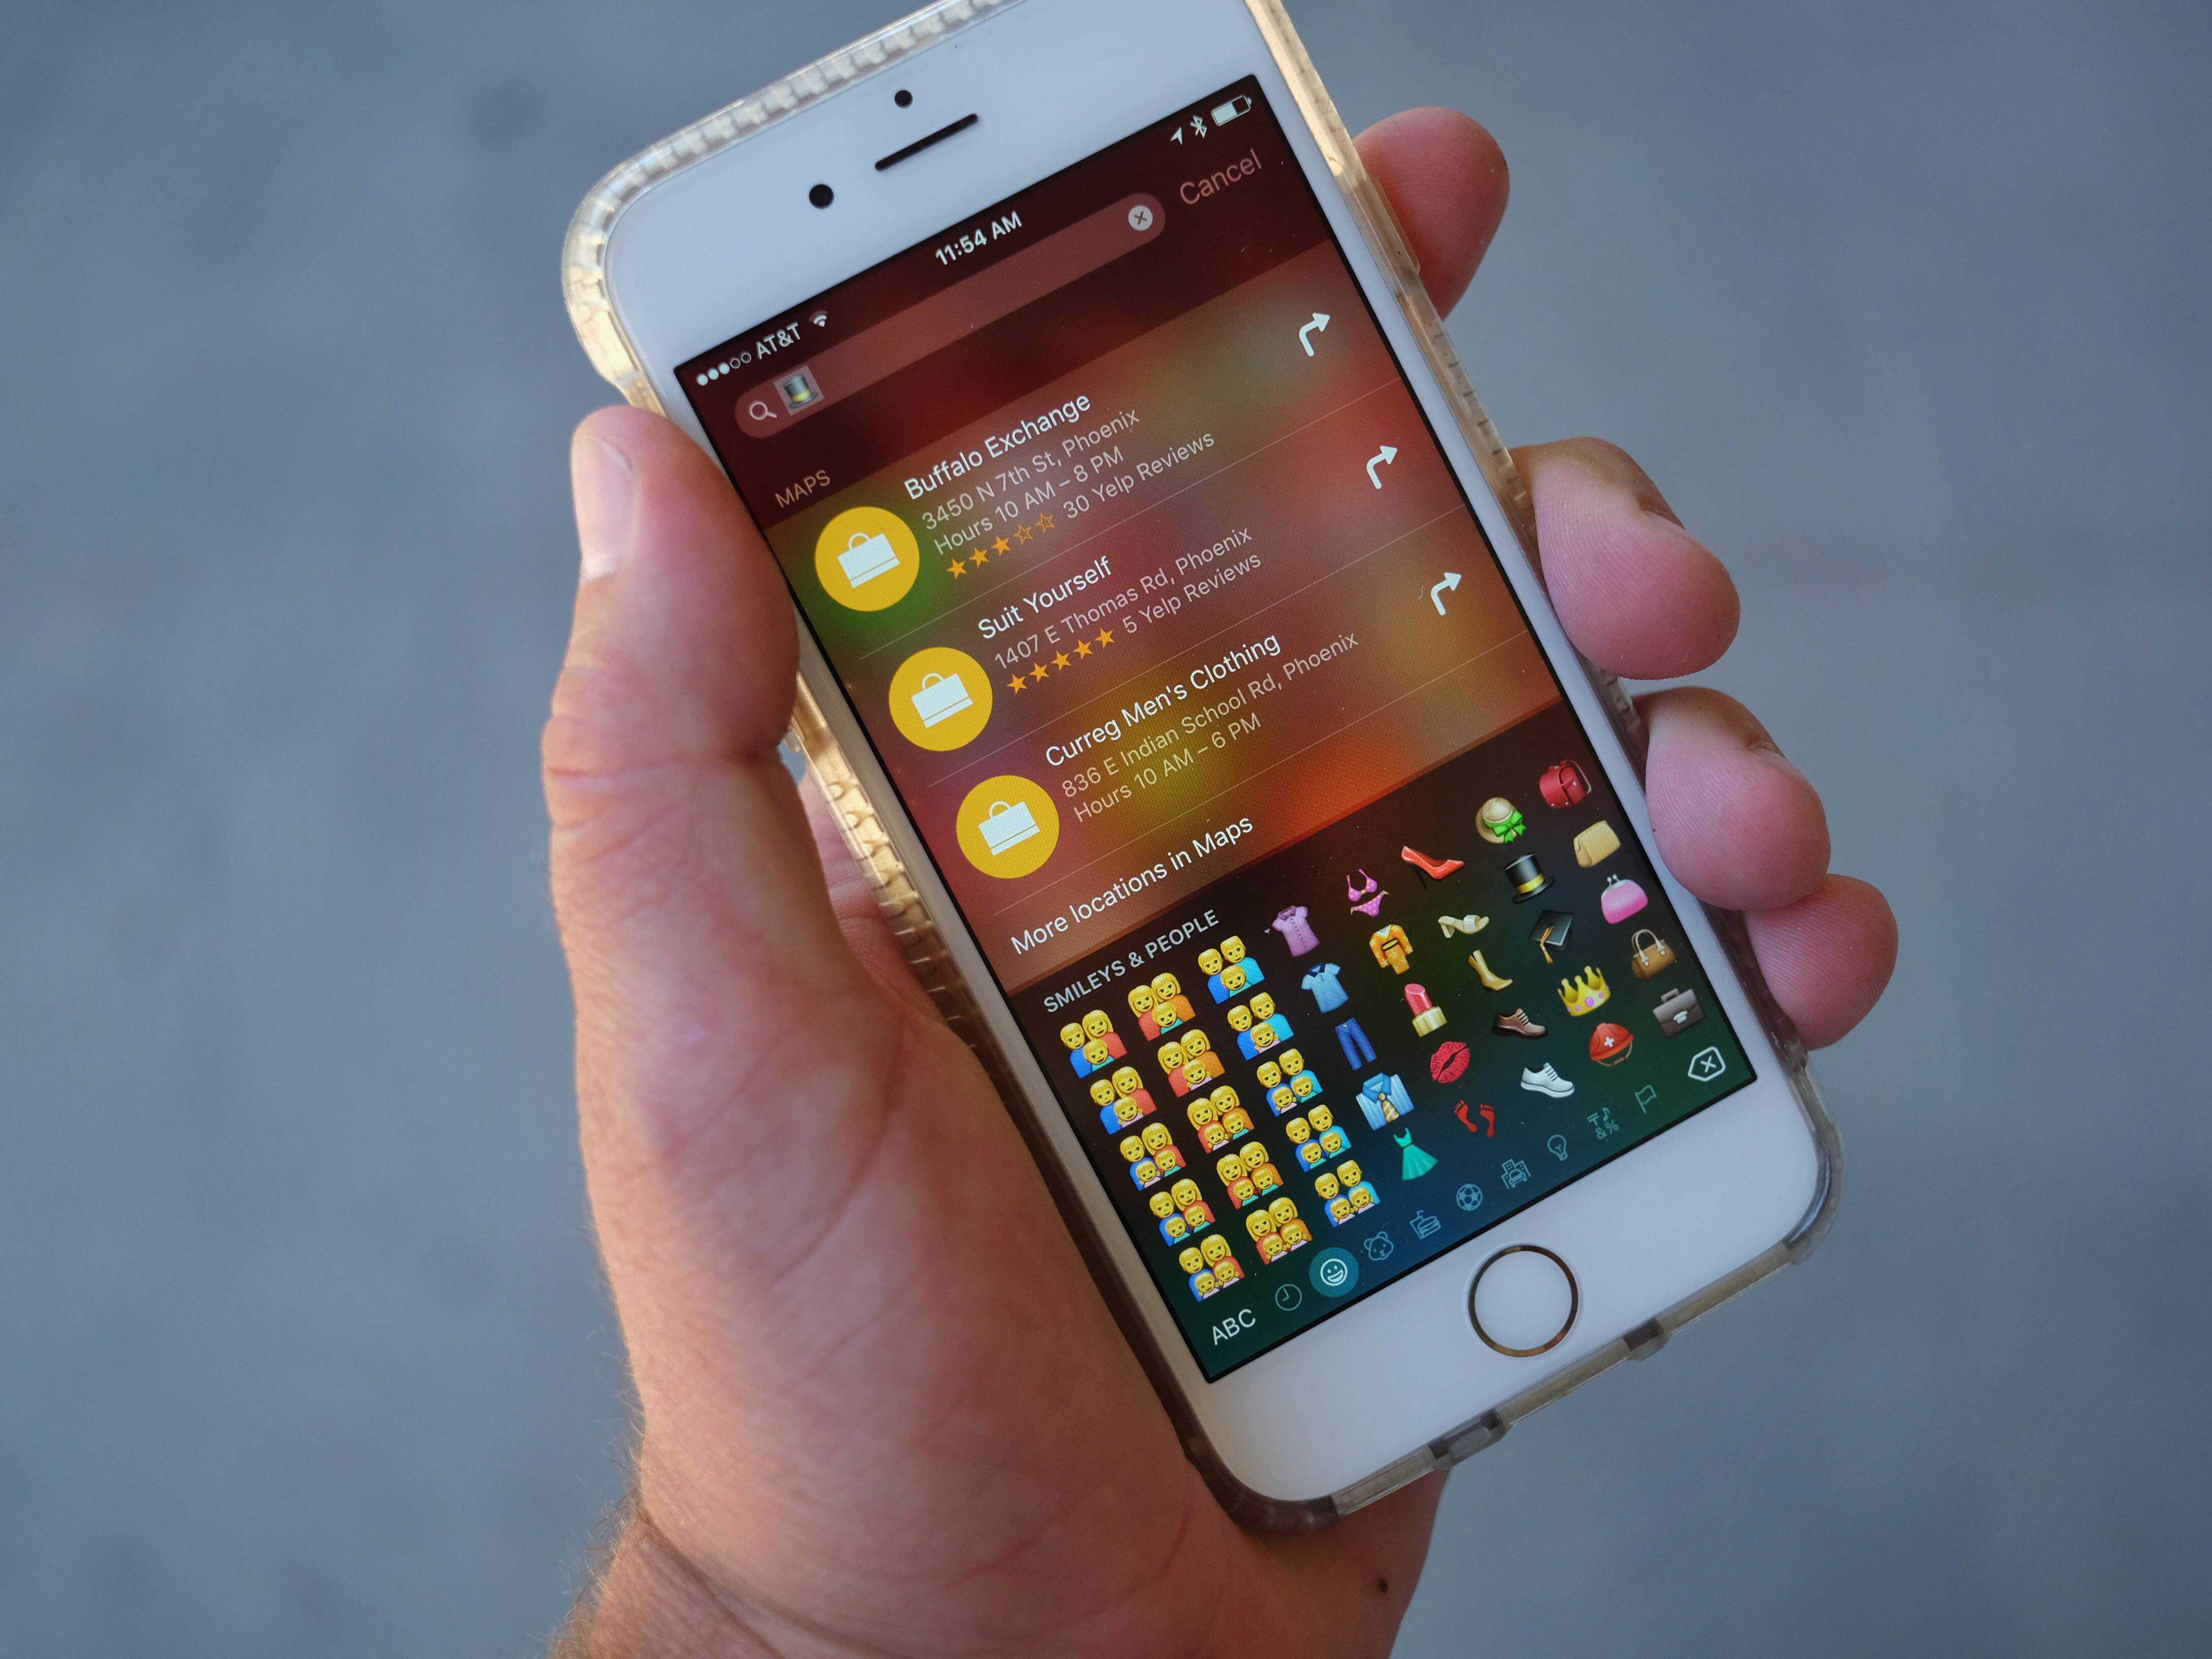 Yes, you can use emoji on iPhone search.